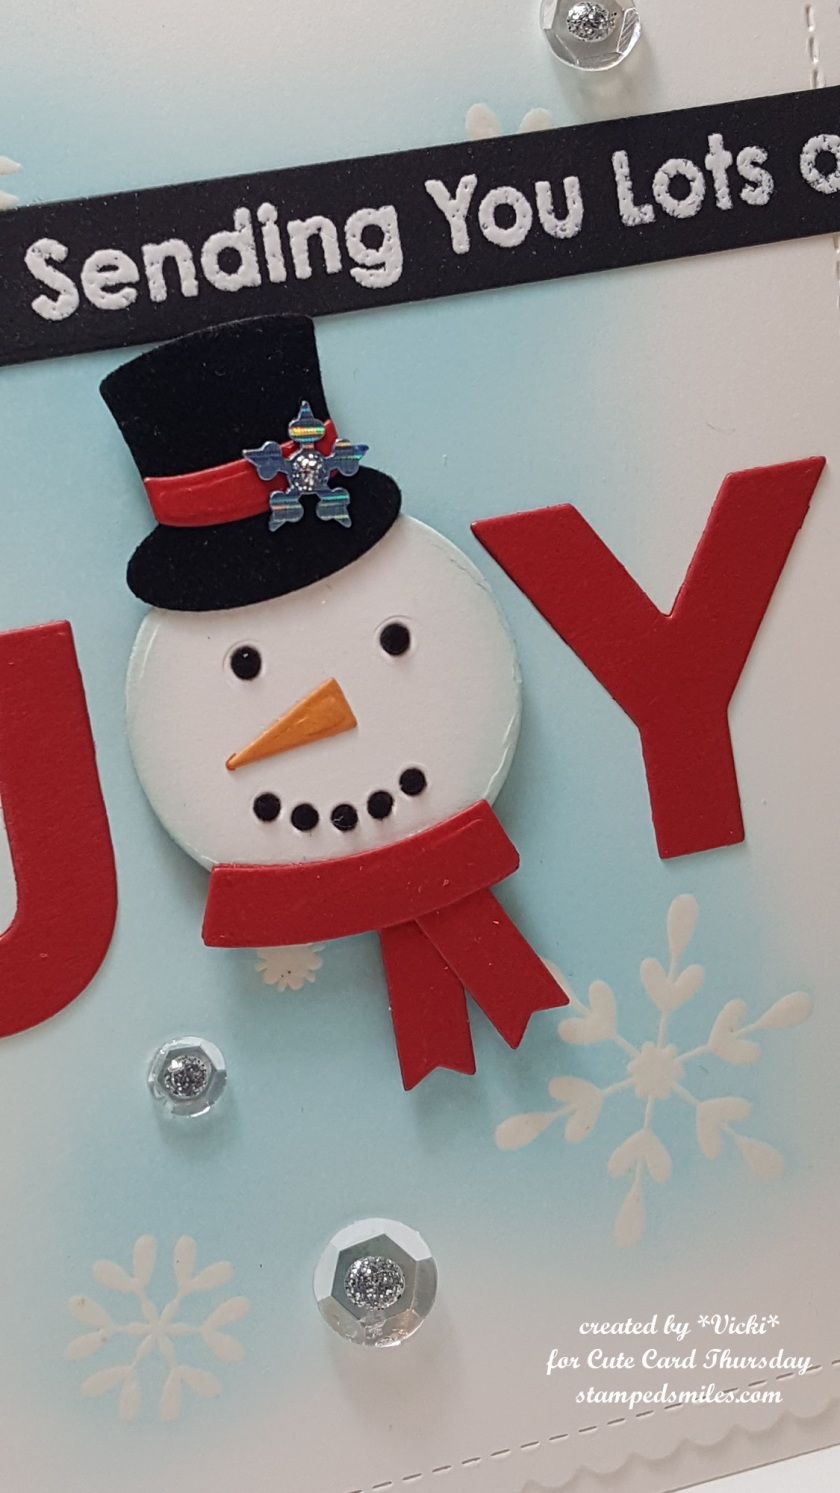 Vicki-CCT561-Snowman Joy-close